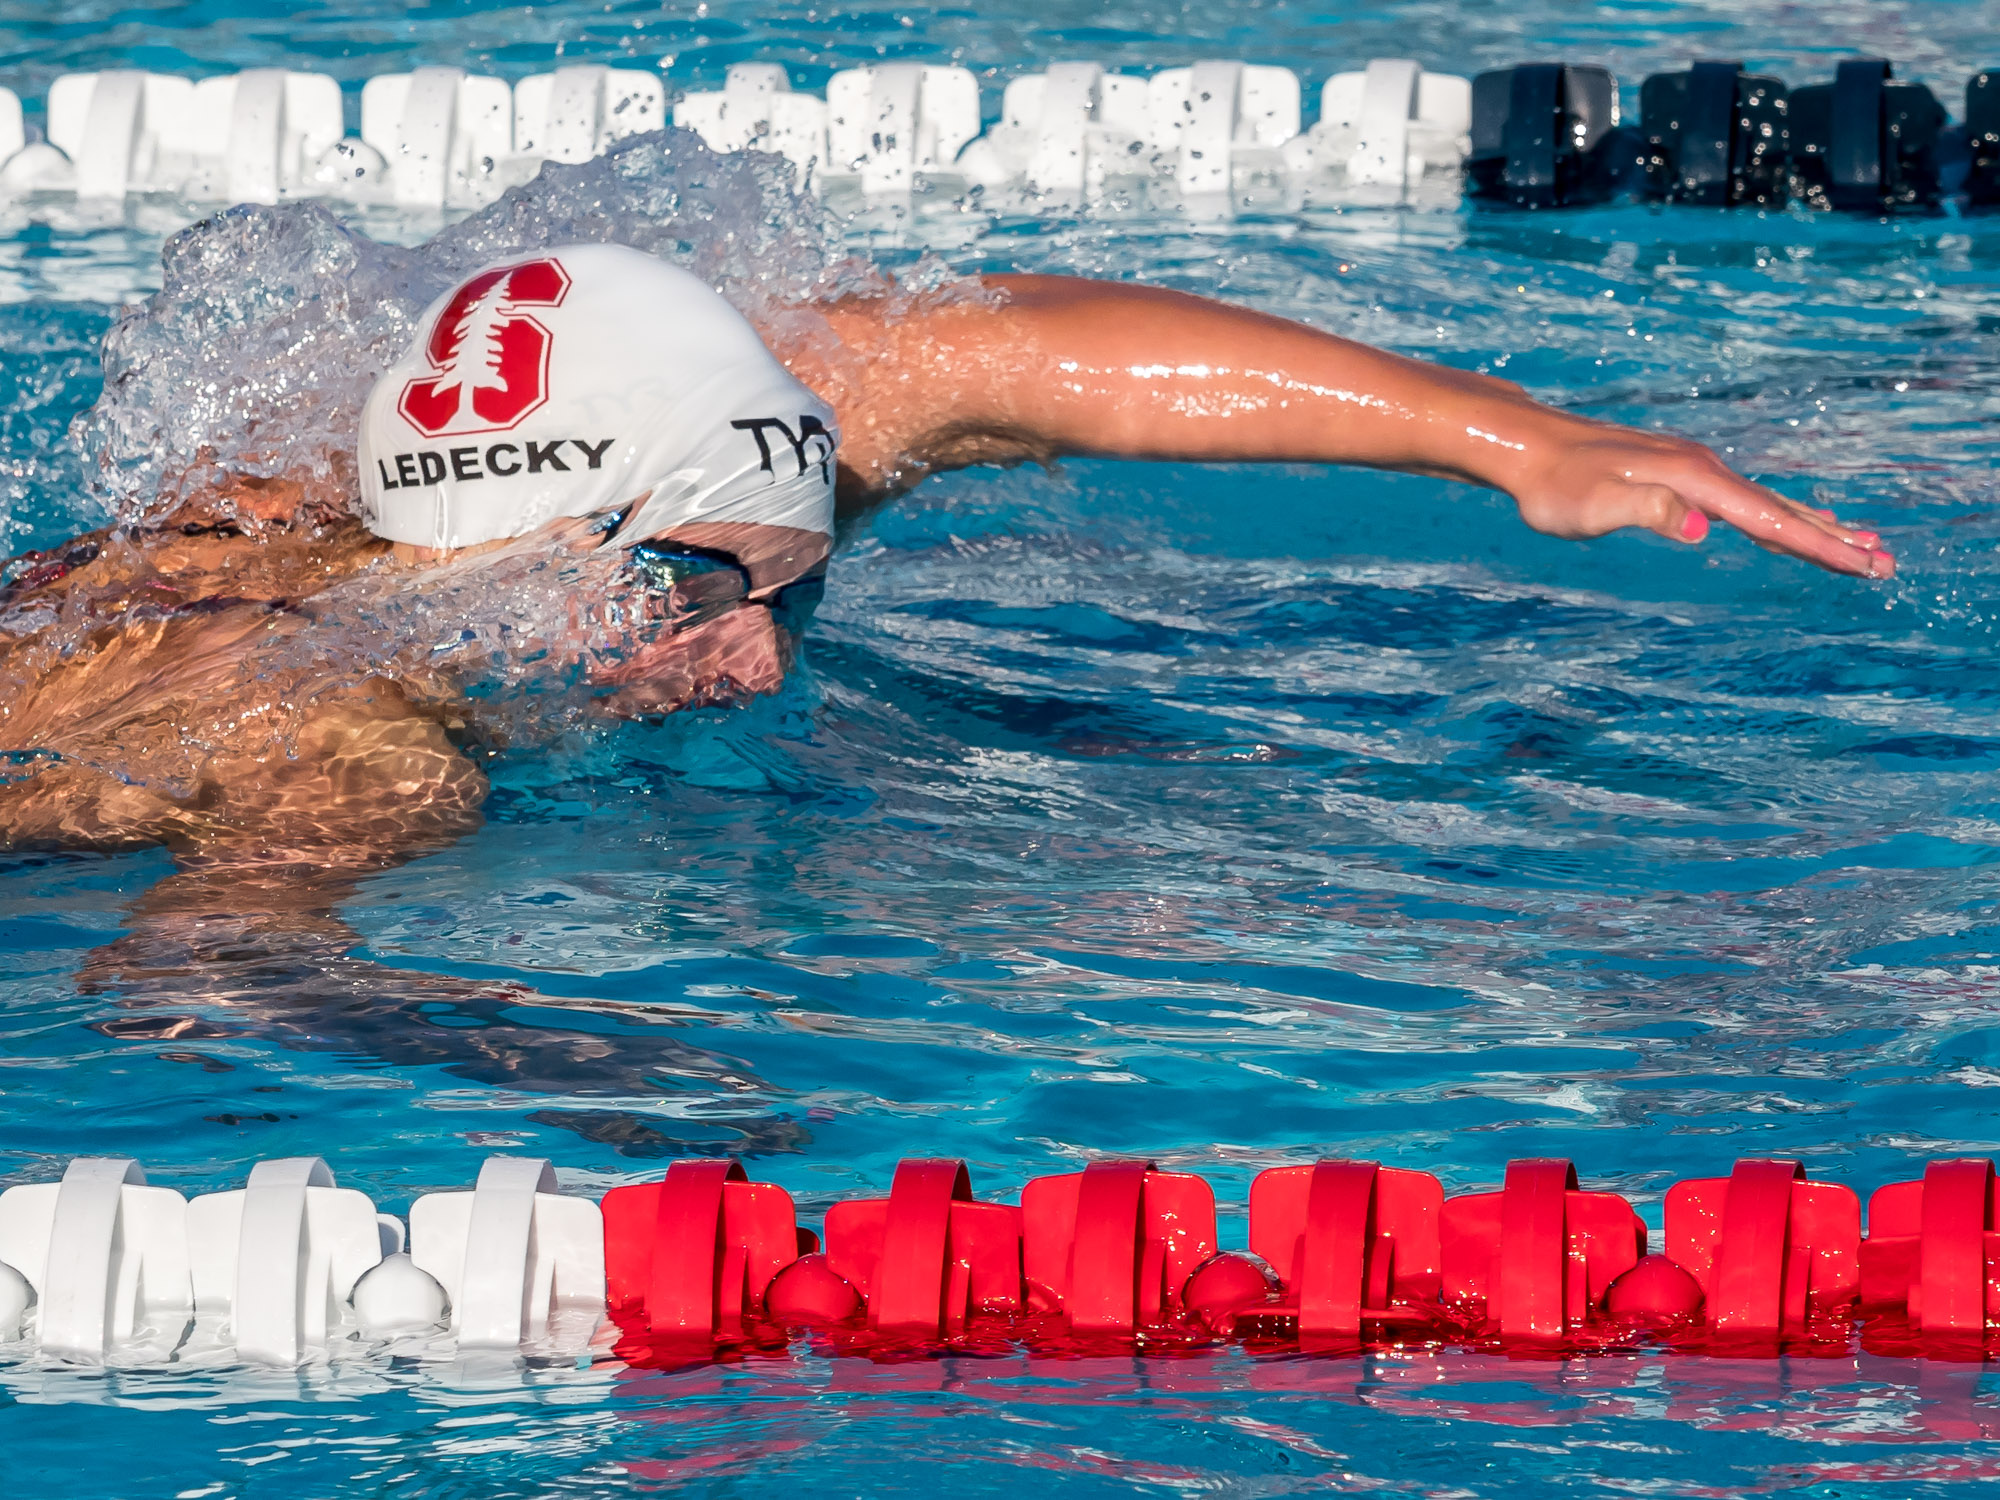 Katie Ledecky Named to ESPN's 20 Most Dominant Athletes of 2018 - Swimming World News